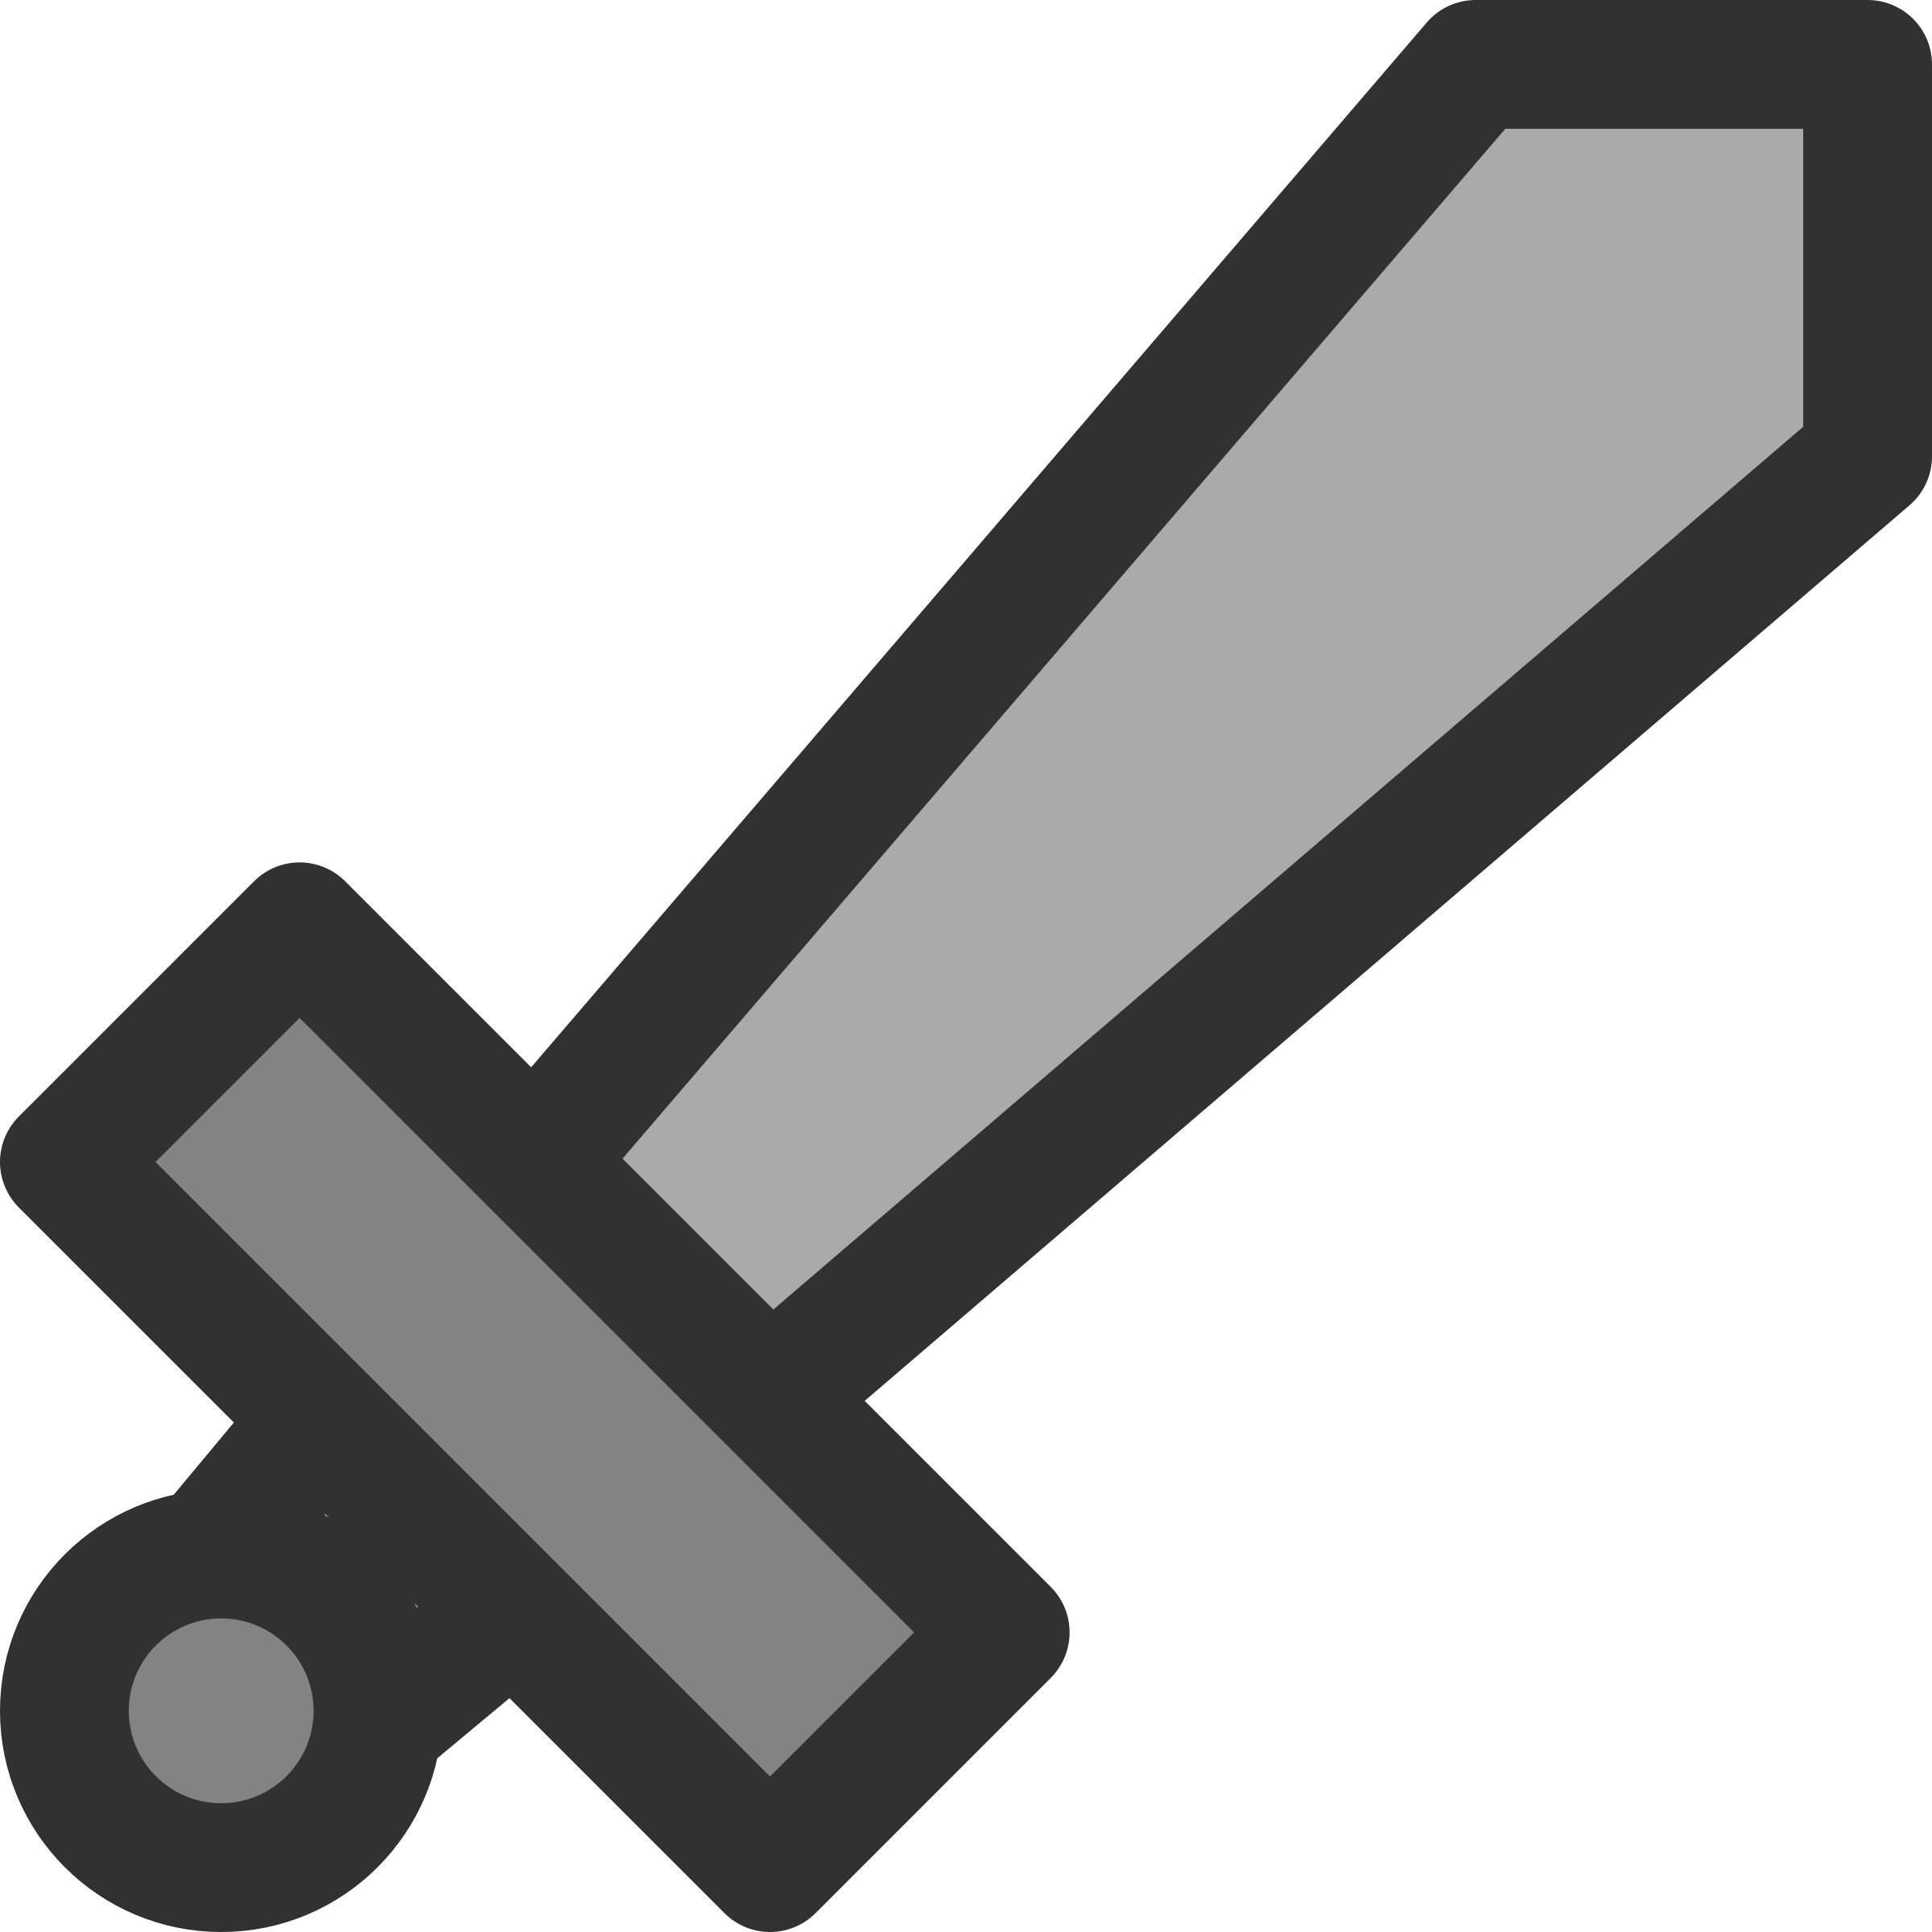 Sword icon png. Metal icons free and